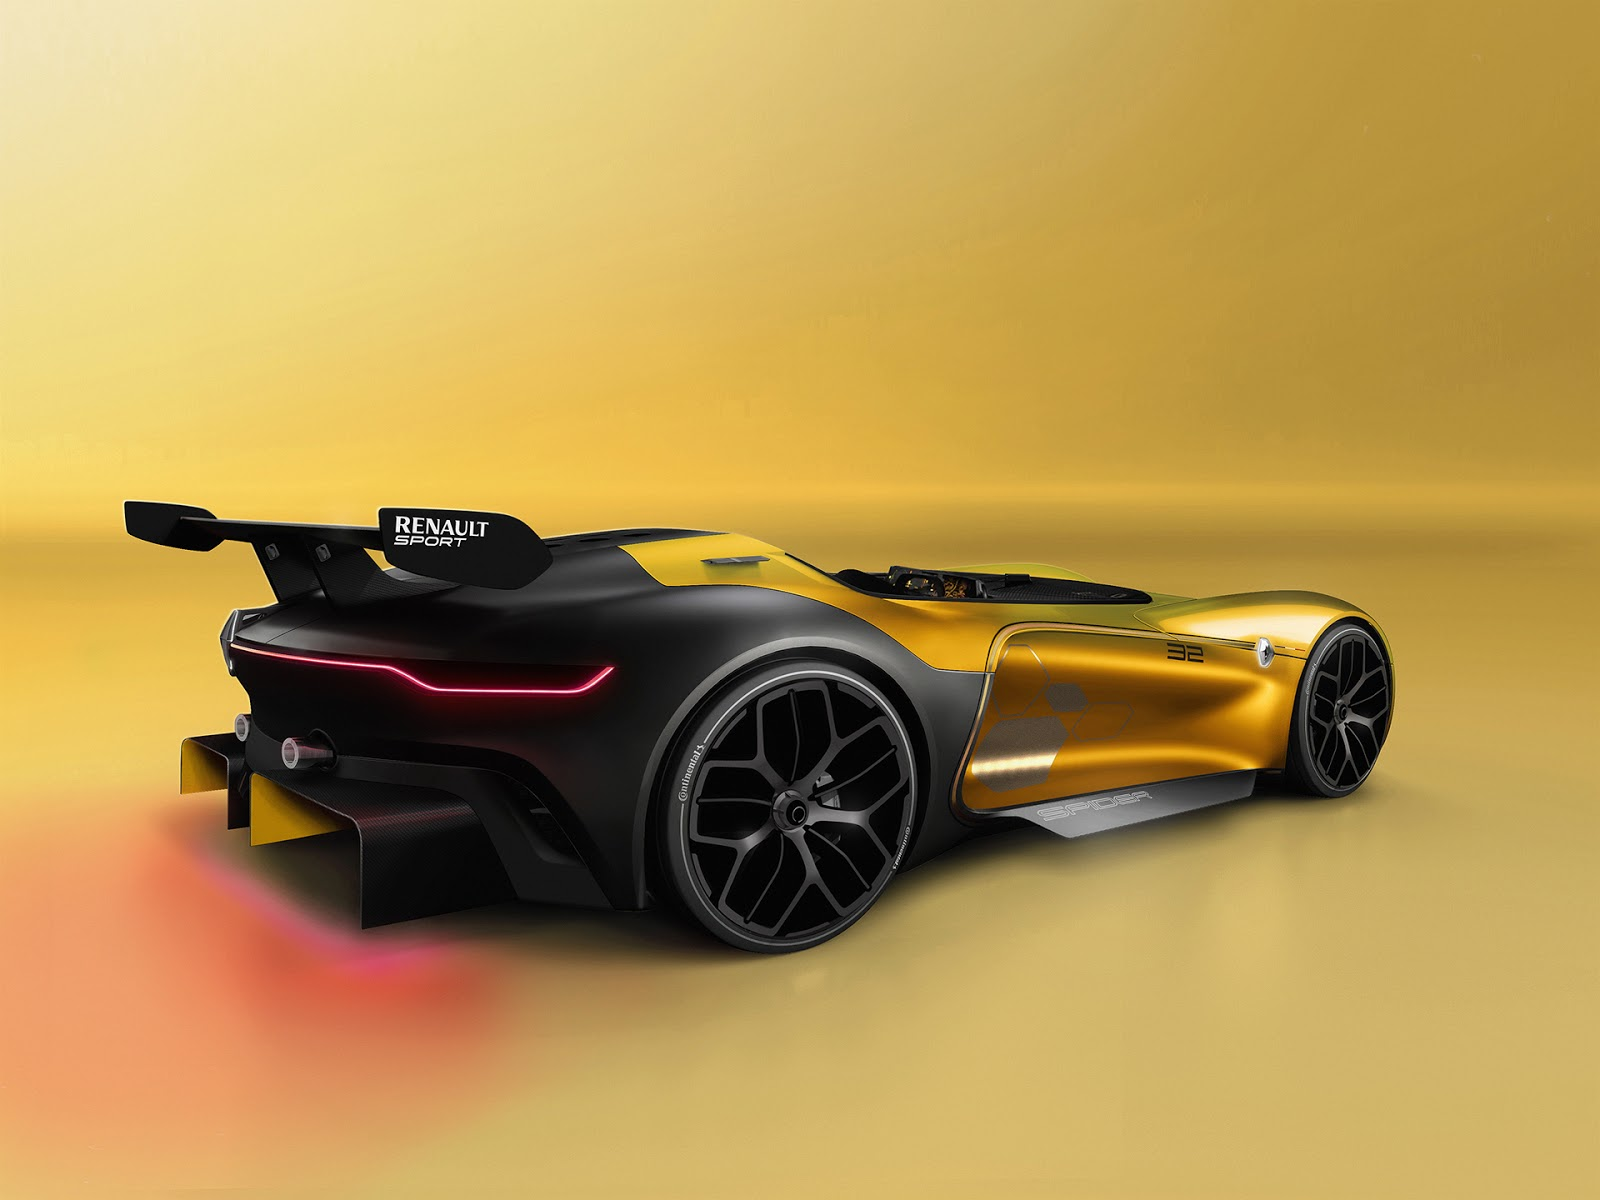 This Race-Focused Renault Spider Gets Our Approval | Carscoops